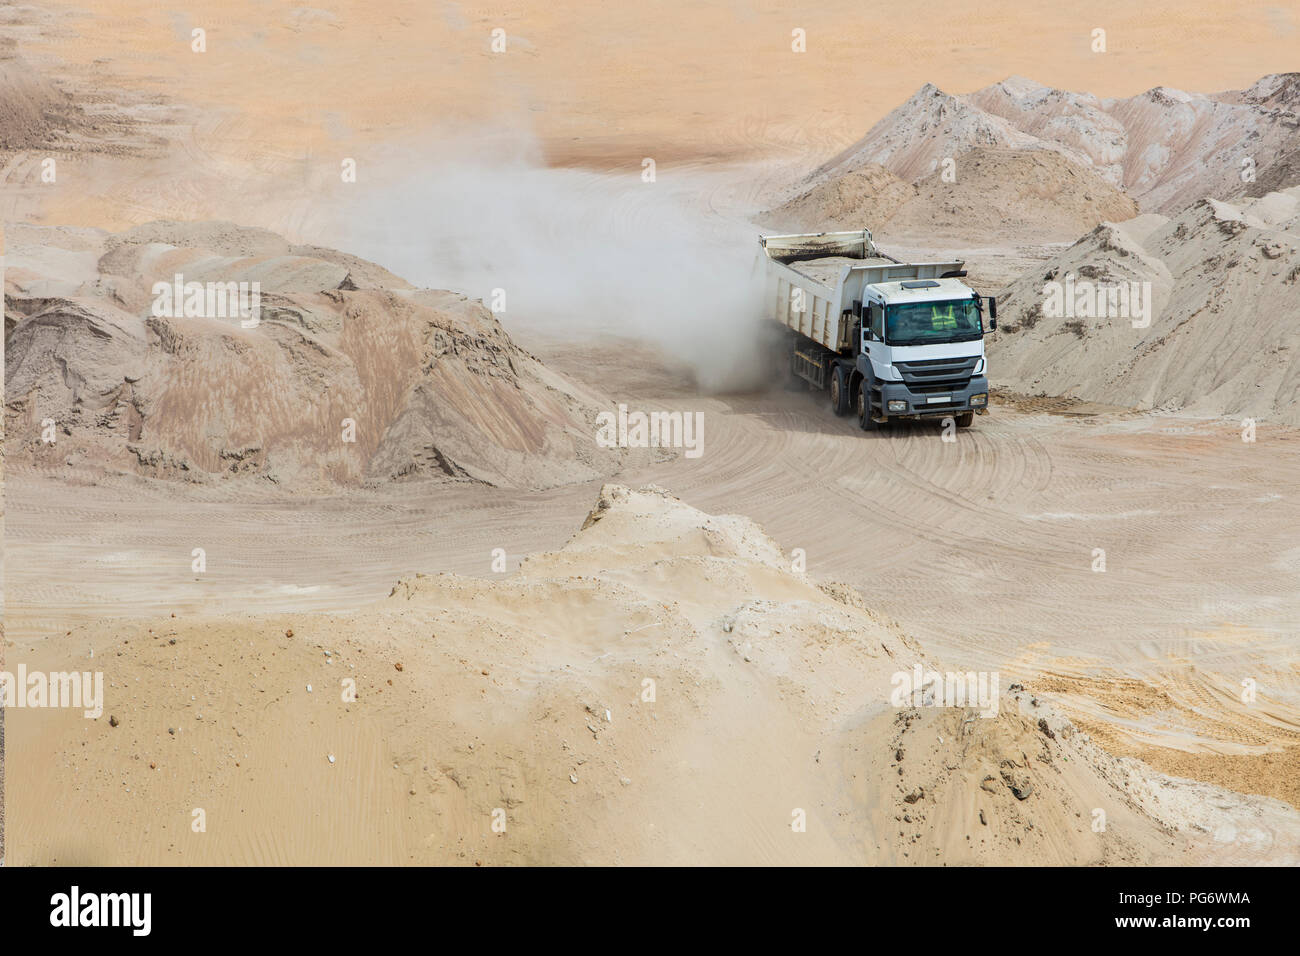 Truck driving through sand heaps Stock Photo